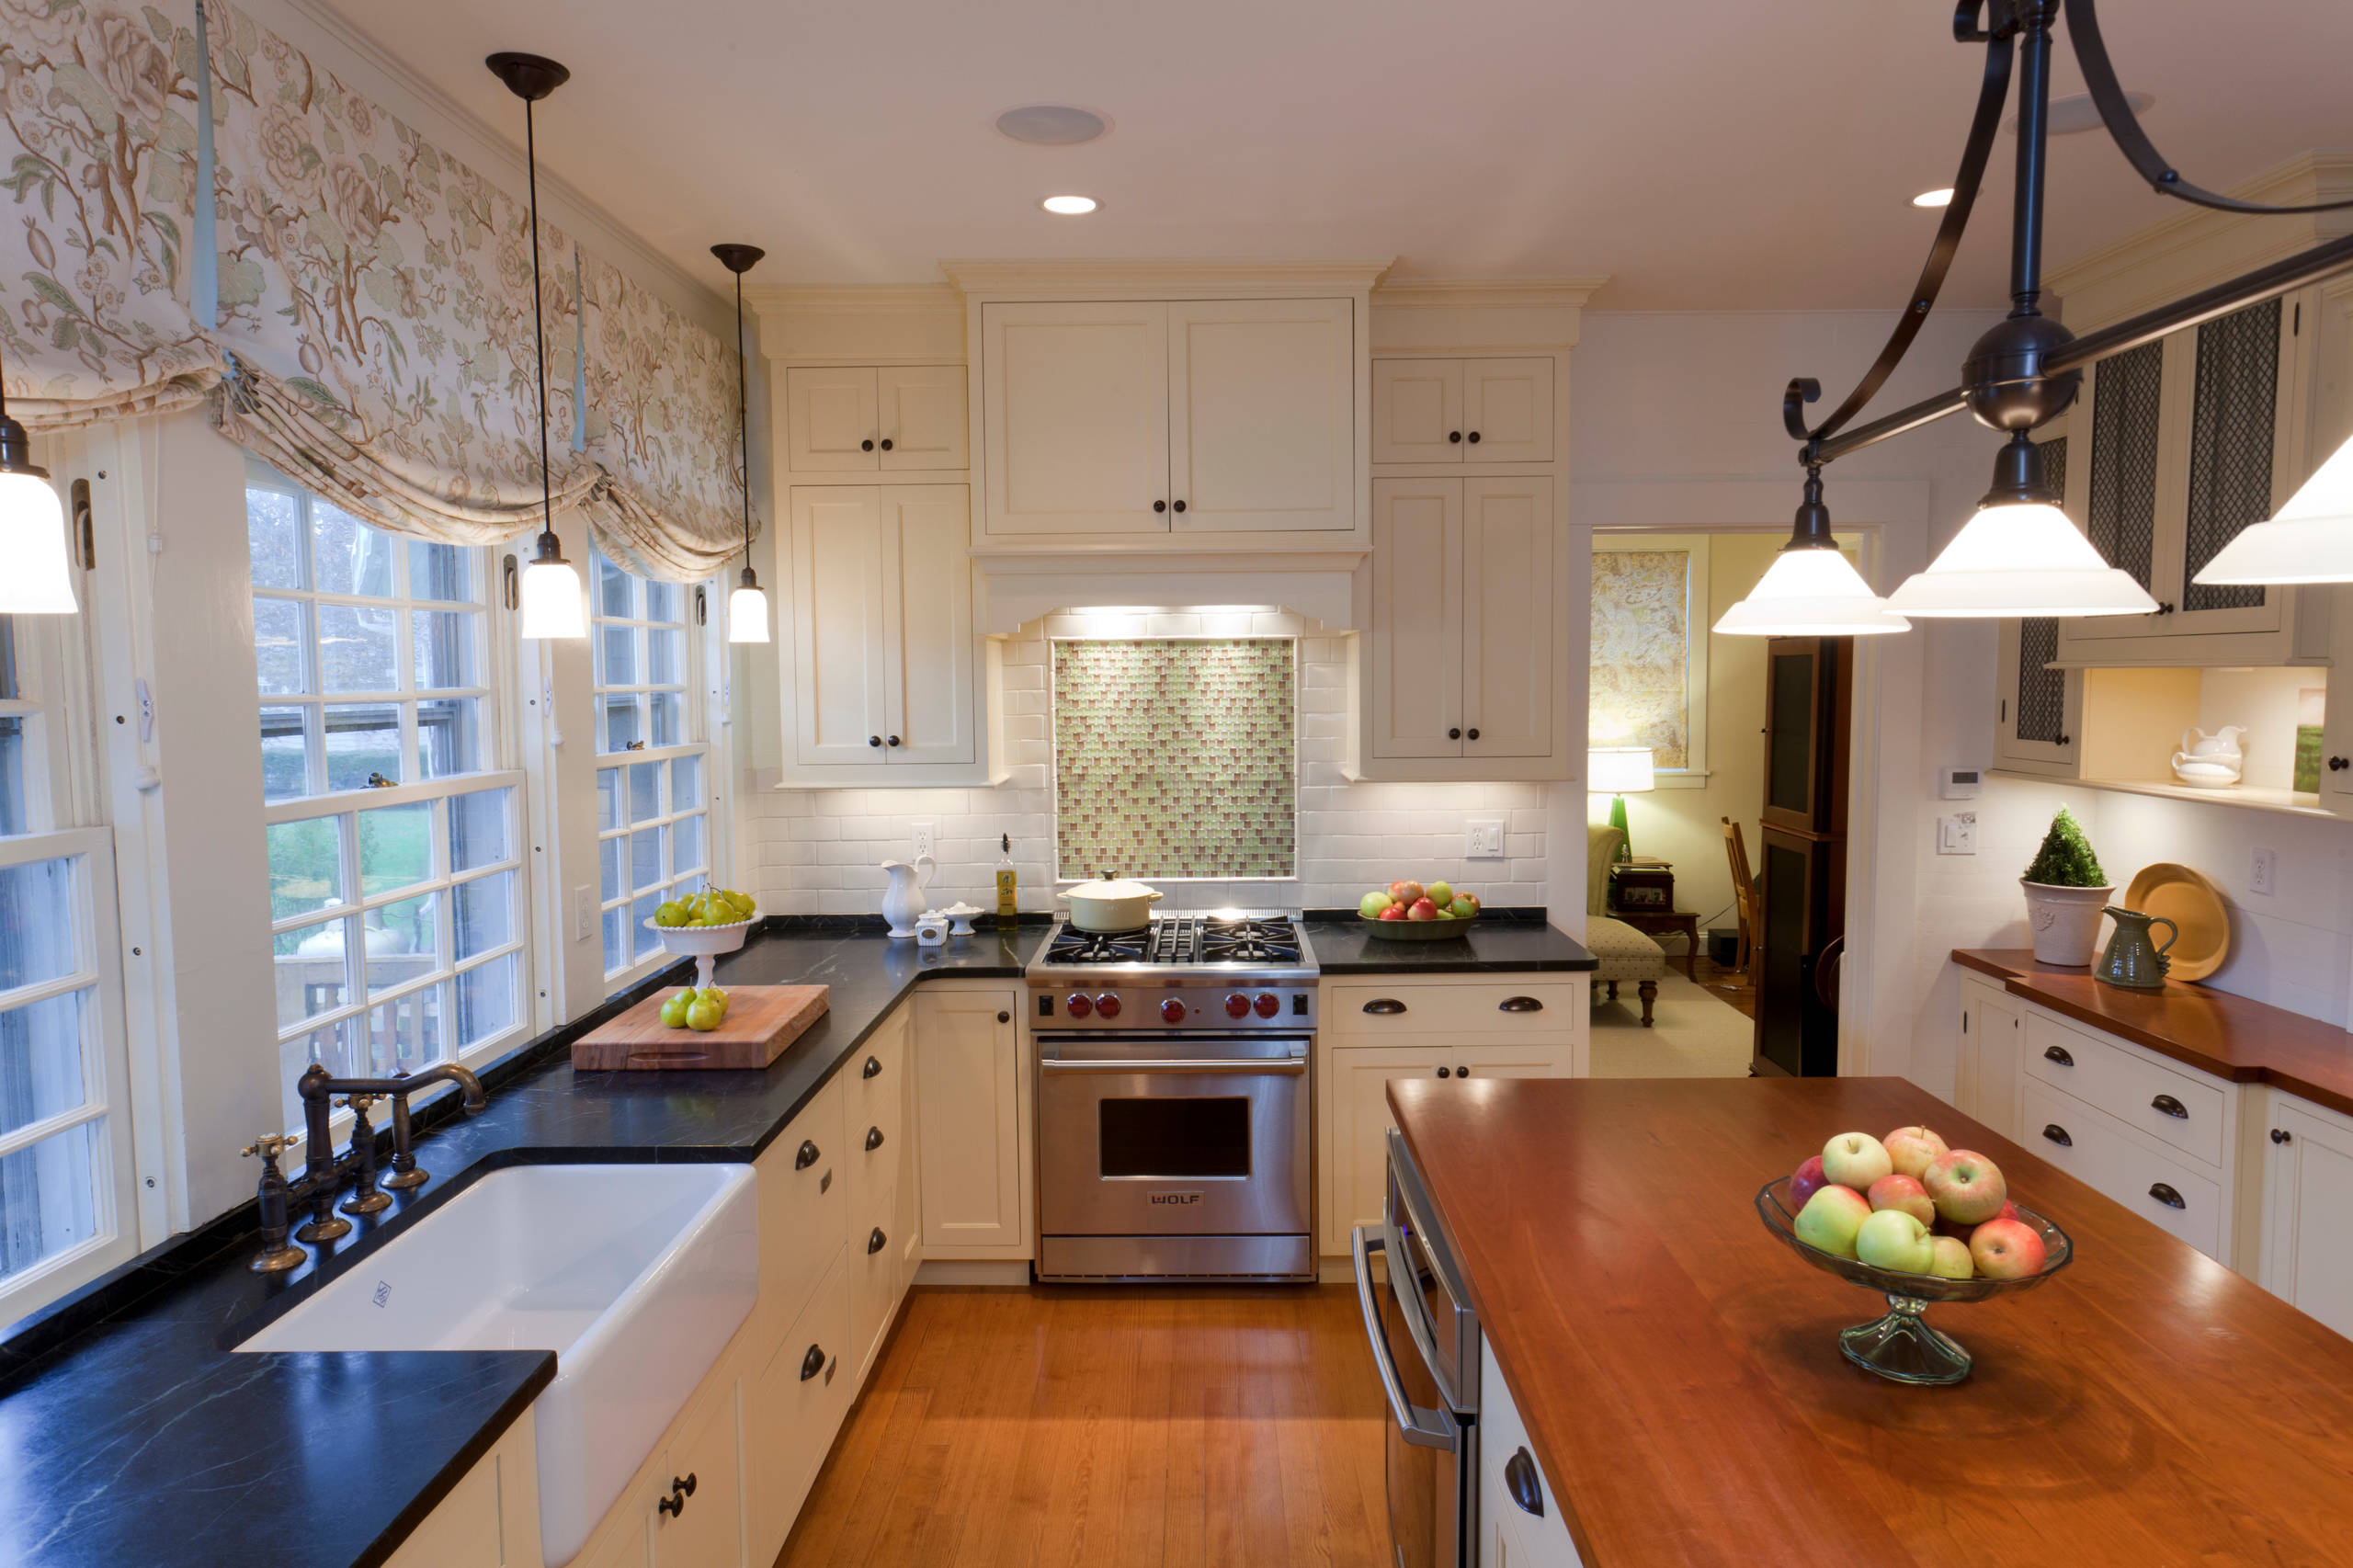 Kitchen in Historic Home